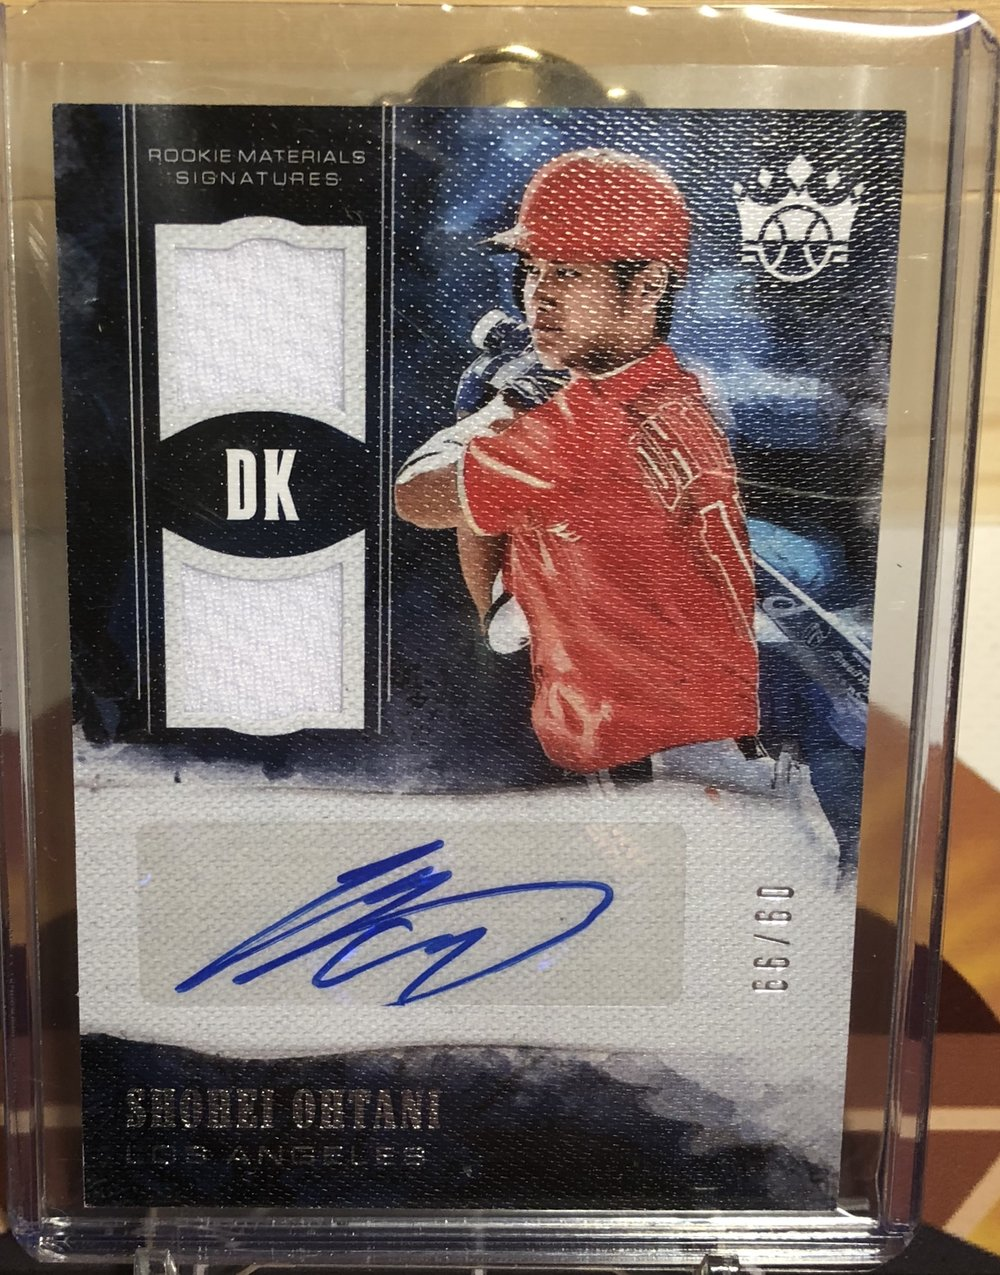 2018 Panini Diamond Kings Shohei Ohtani Rookie Materials Signatures /99